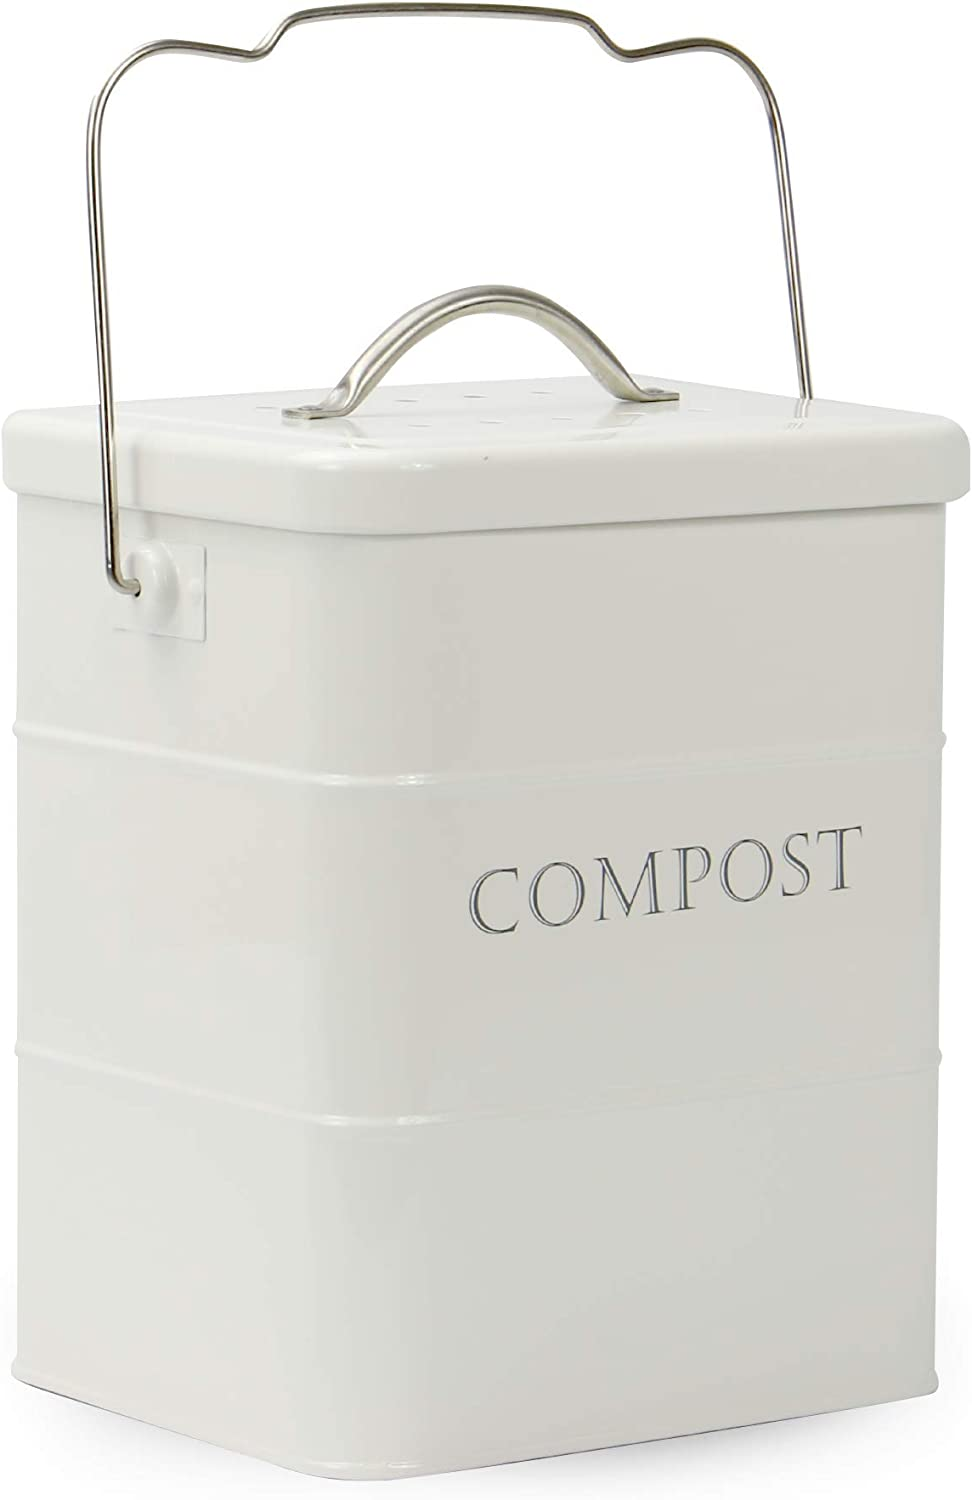 3.5L Kitchen Compost Bin | White Food & Waste Caddy | Metal Recycling Kitchen Storage Bins | Outdoor Recycle Tin | M&W